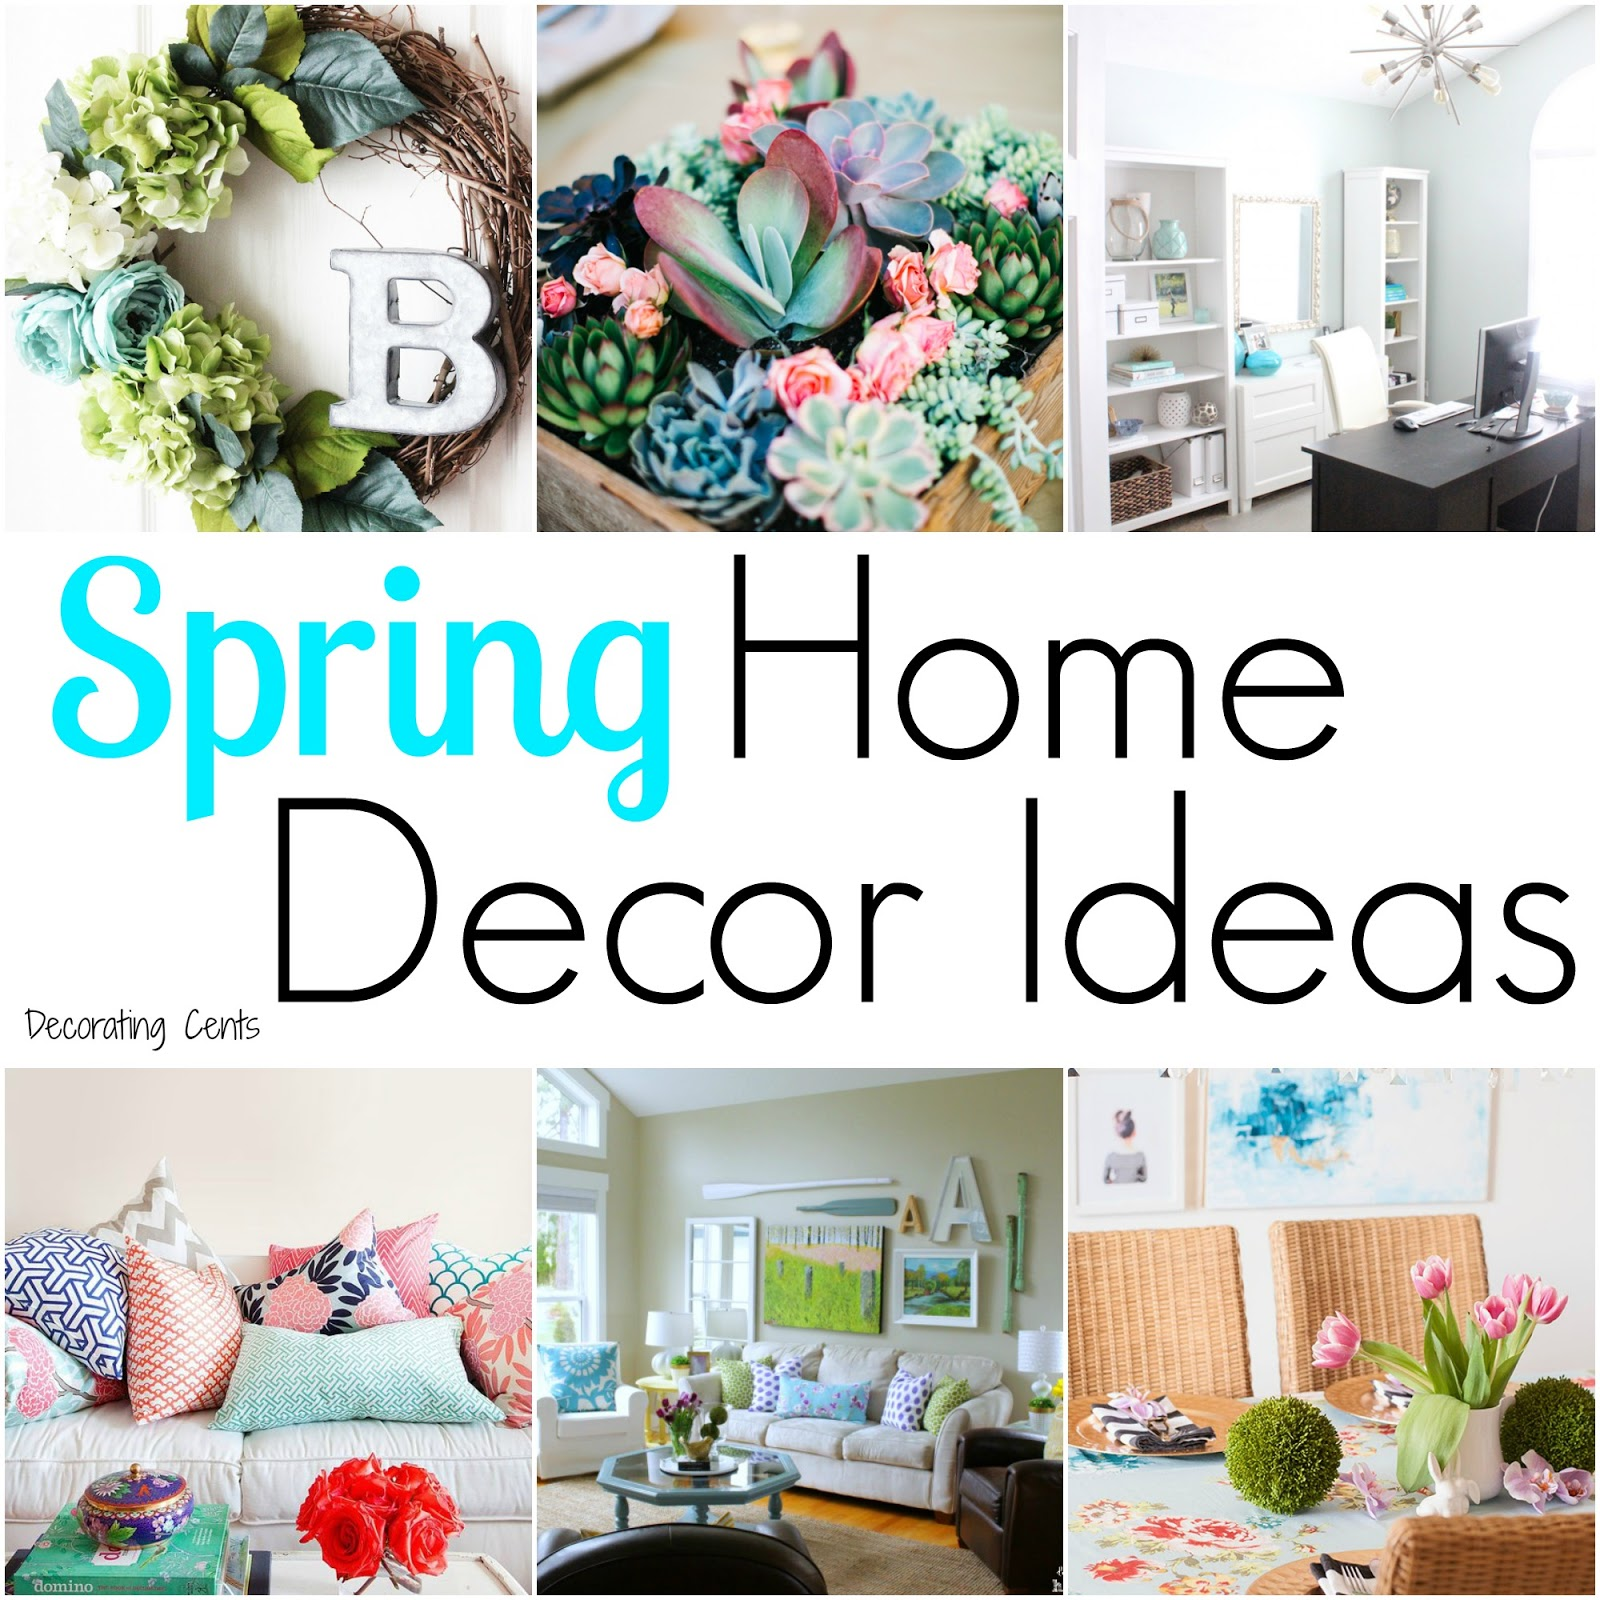 Decorating cents spring home decor ideas for Home furnishing designs